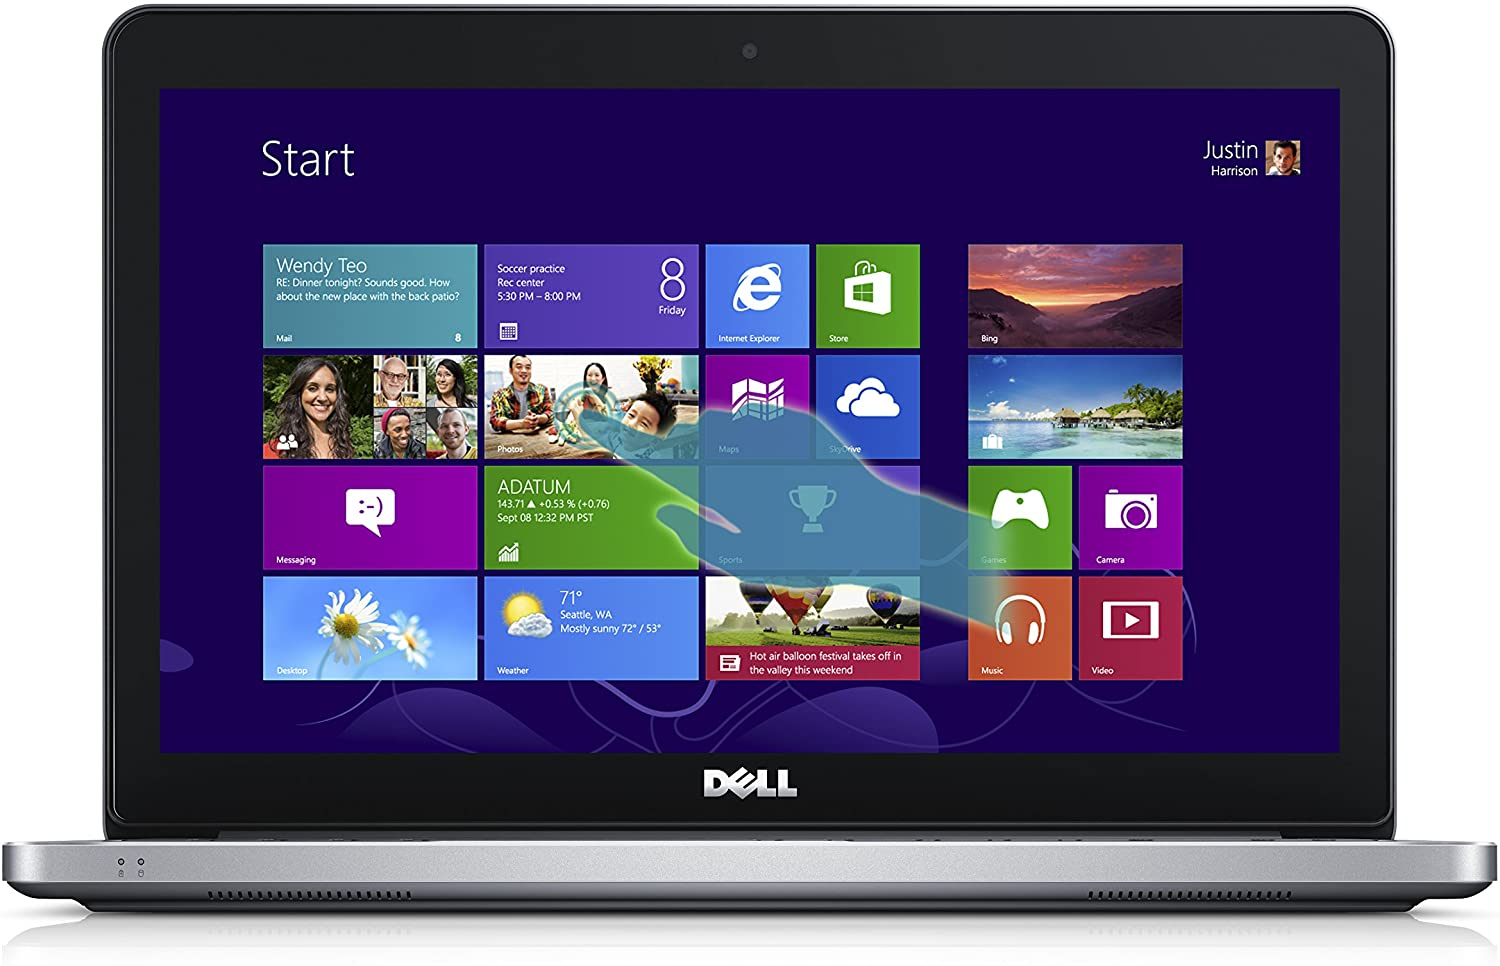 Dell Inspiron 15 7000 Series i7537T-1122sLV 15-Inch Touchscreen Laptop (Intel Core i5 Processor, 6GB RAM)